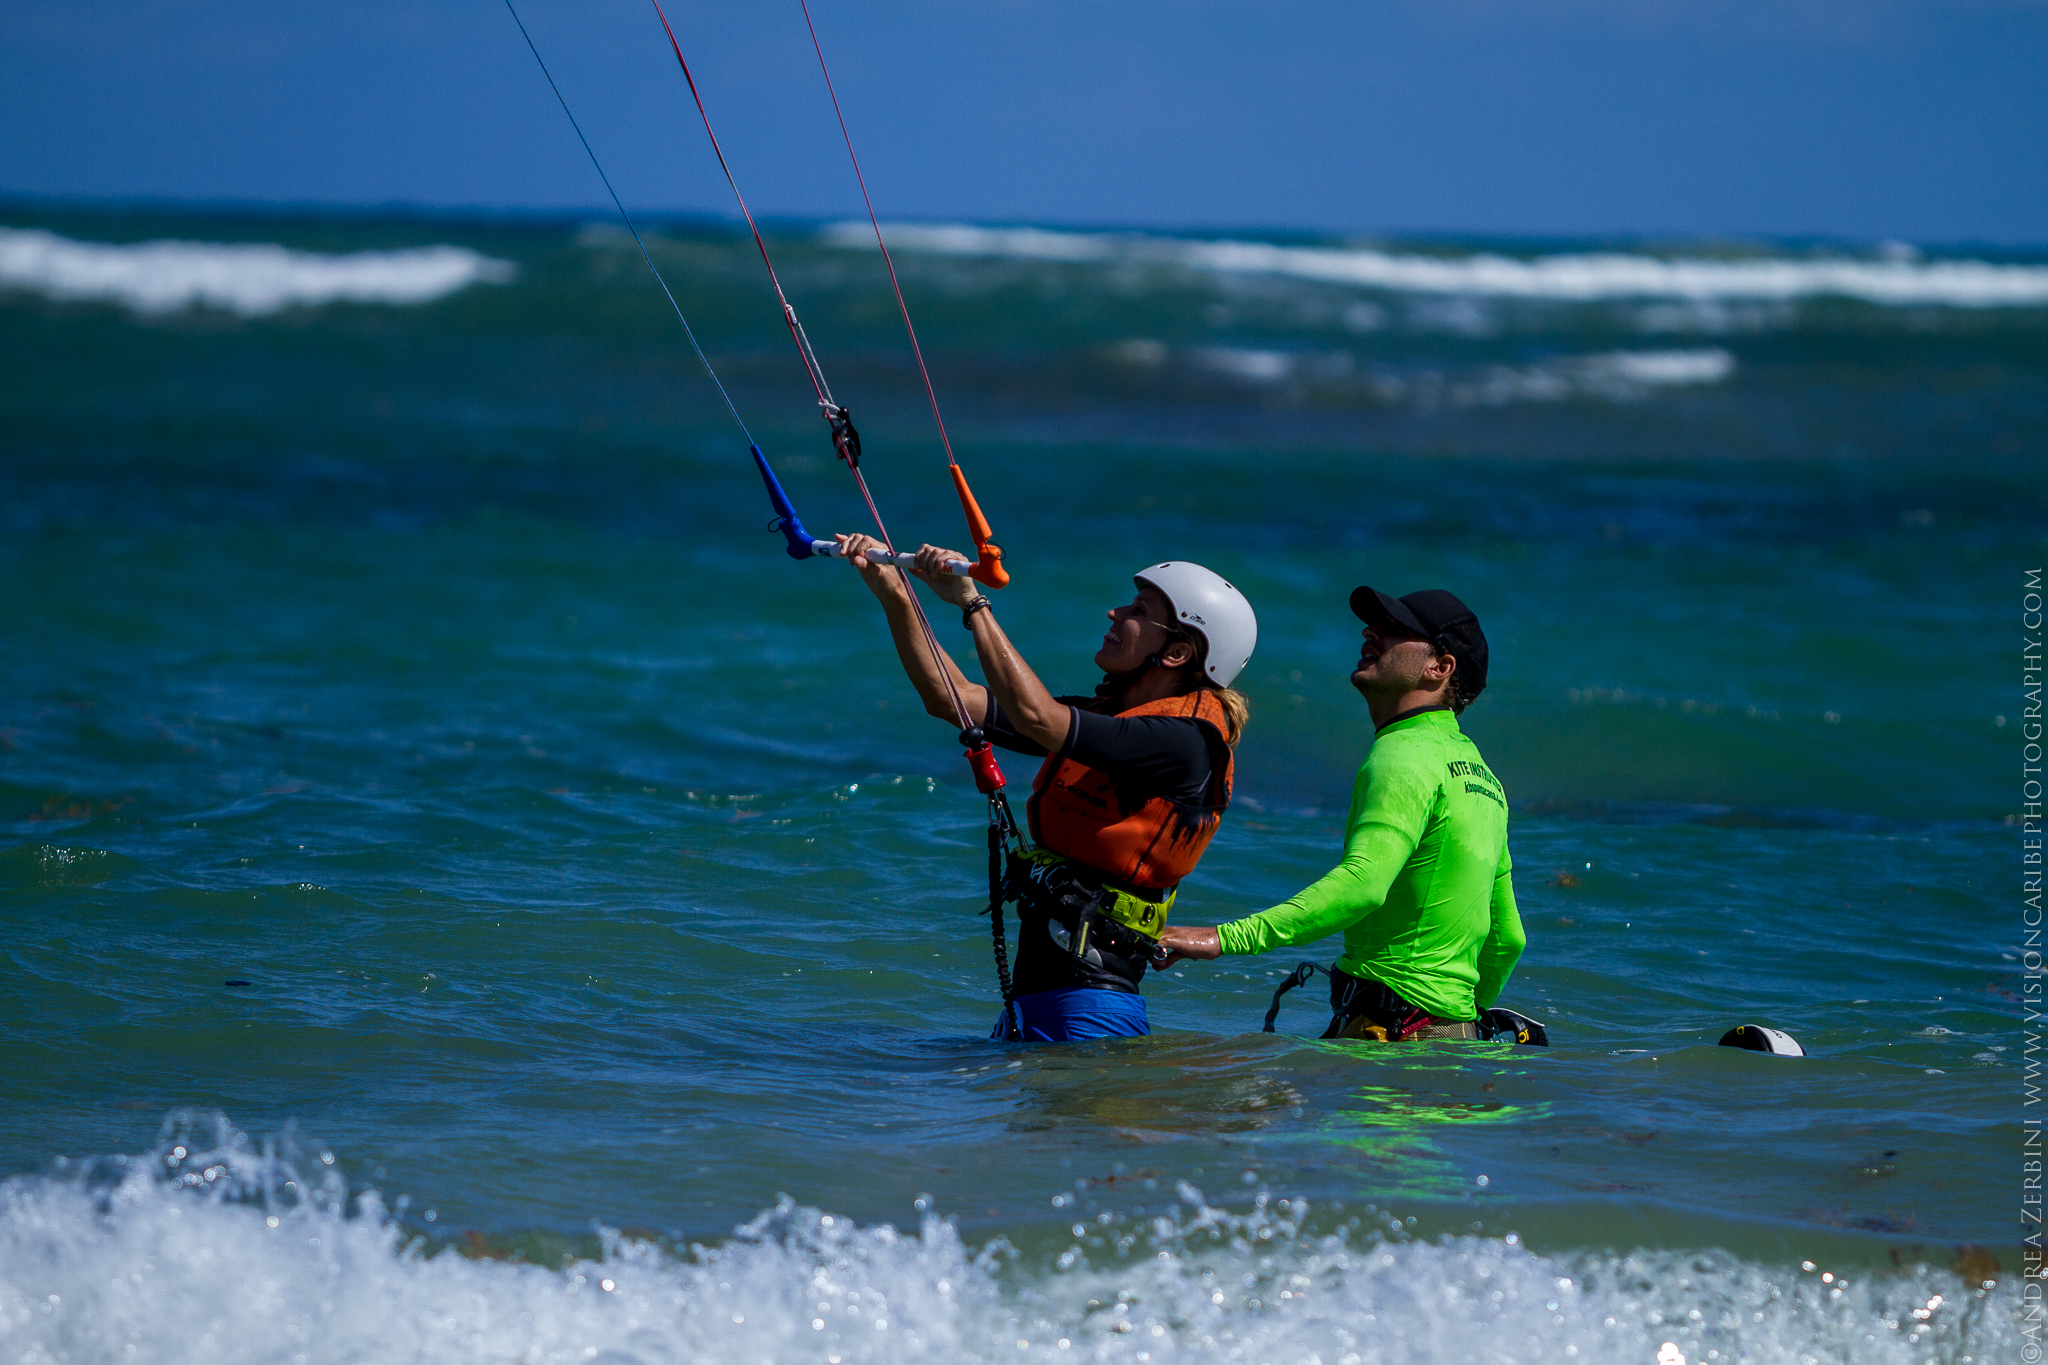 kite-surfing-beginner-advanced-lessons-kitesurfing-rental-northkites-kiteboarding-school-punta-cana-uvero-alto-bavaro-dominican-republic-iko-certification-level2.jpeg